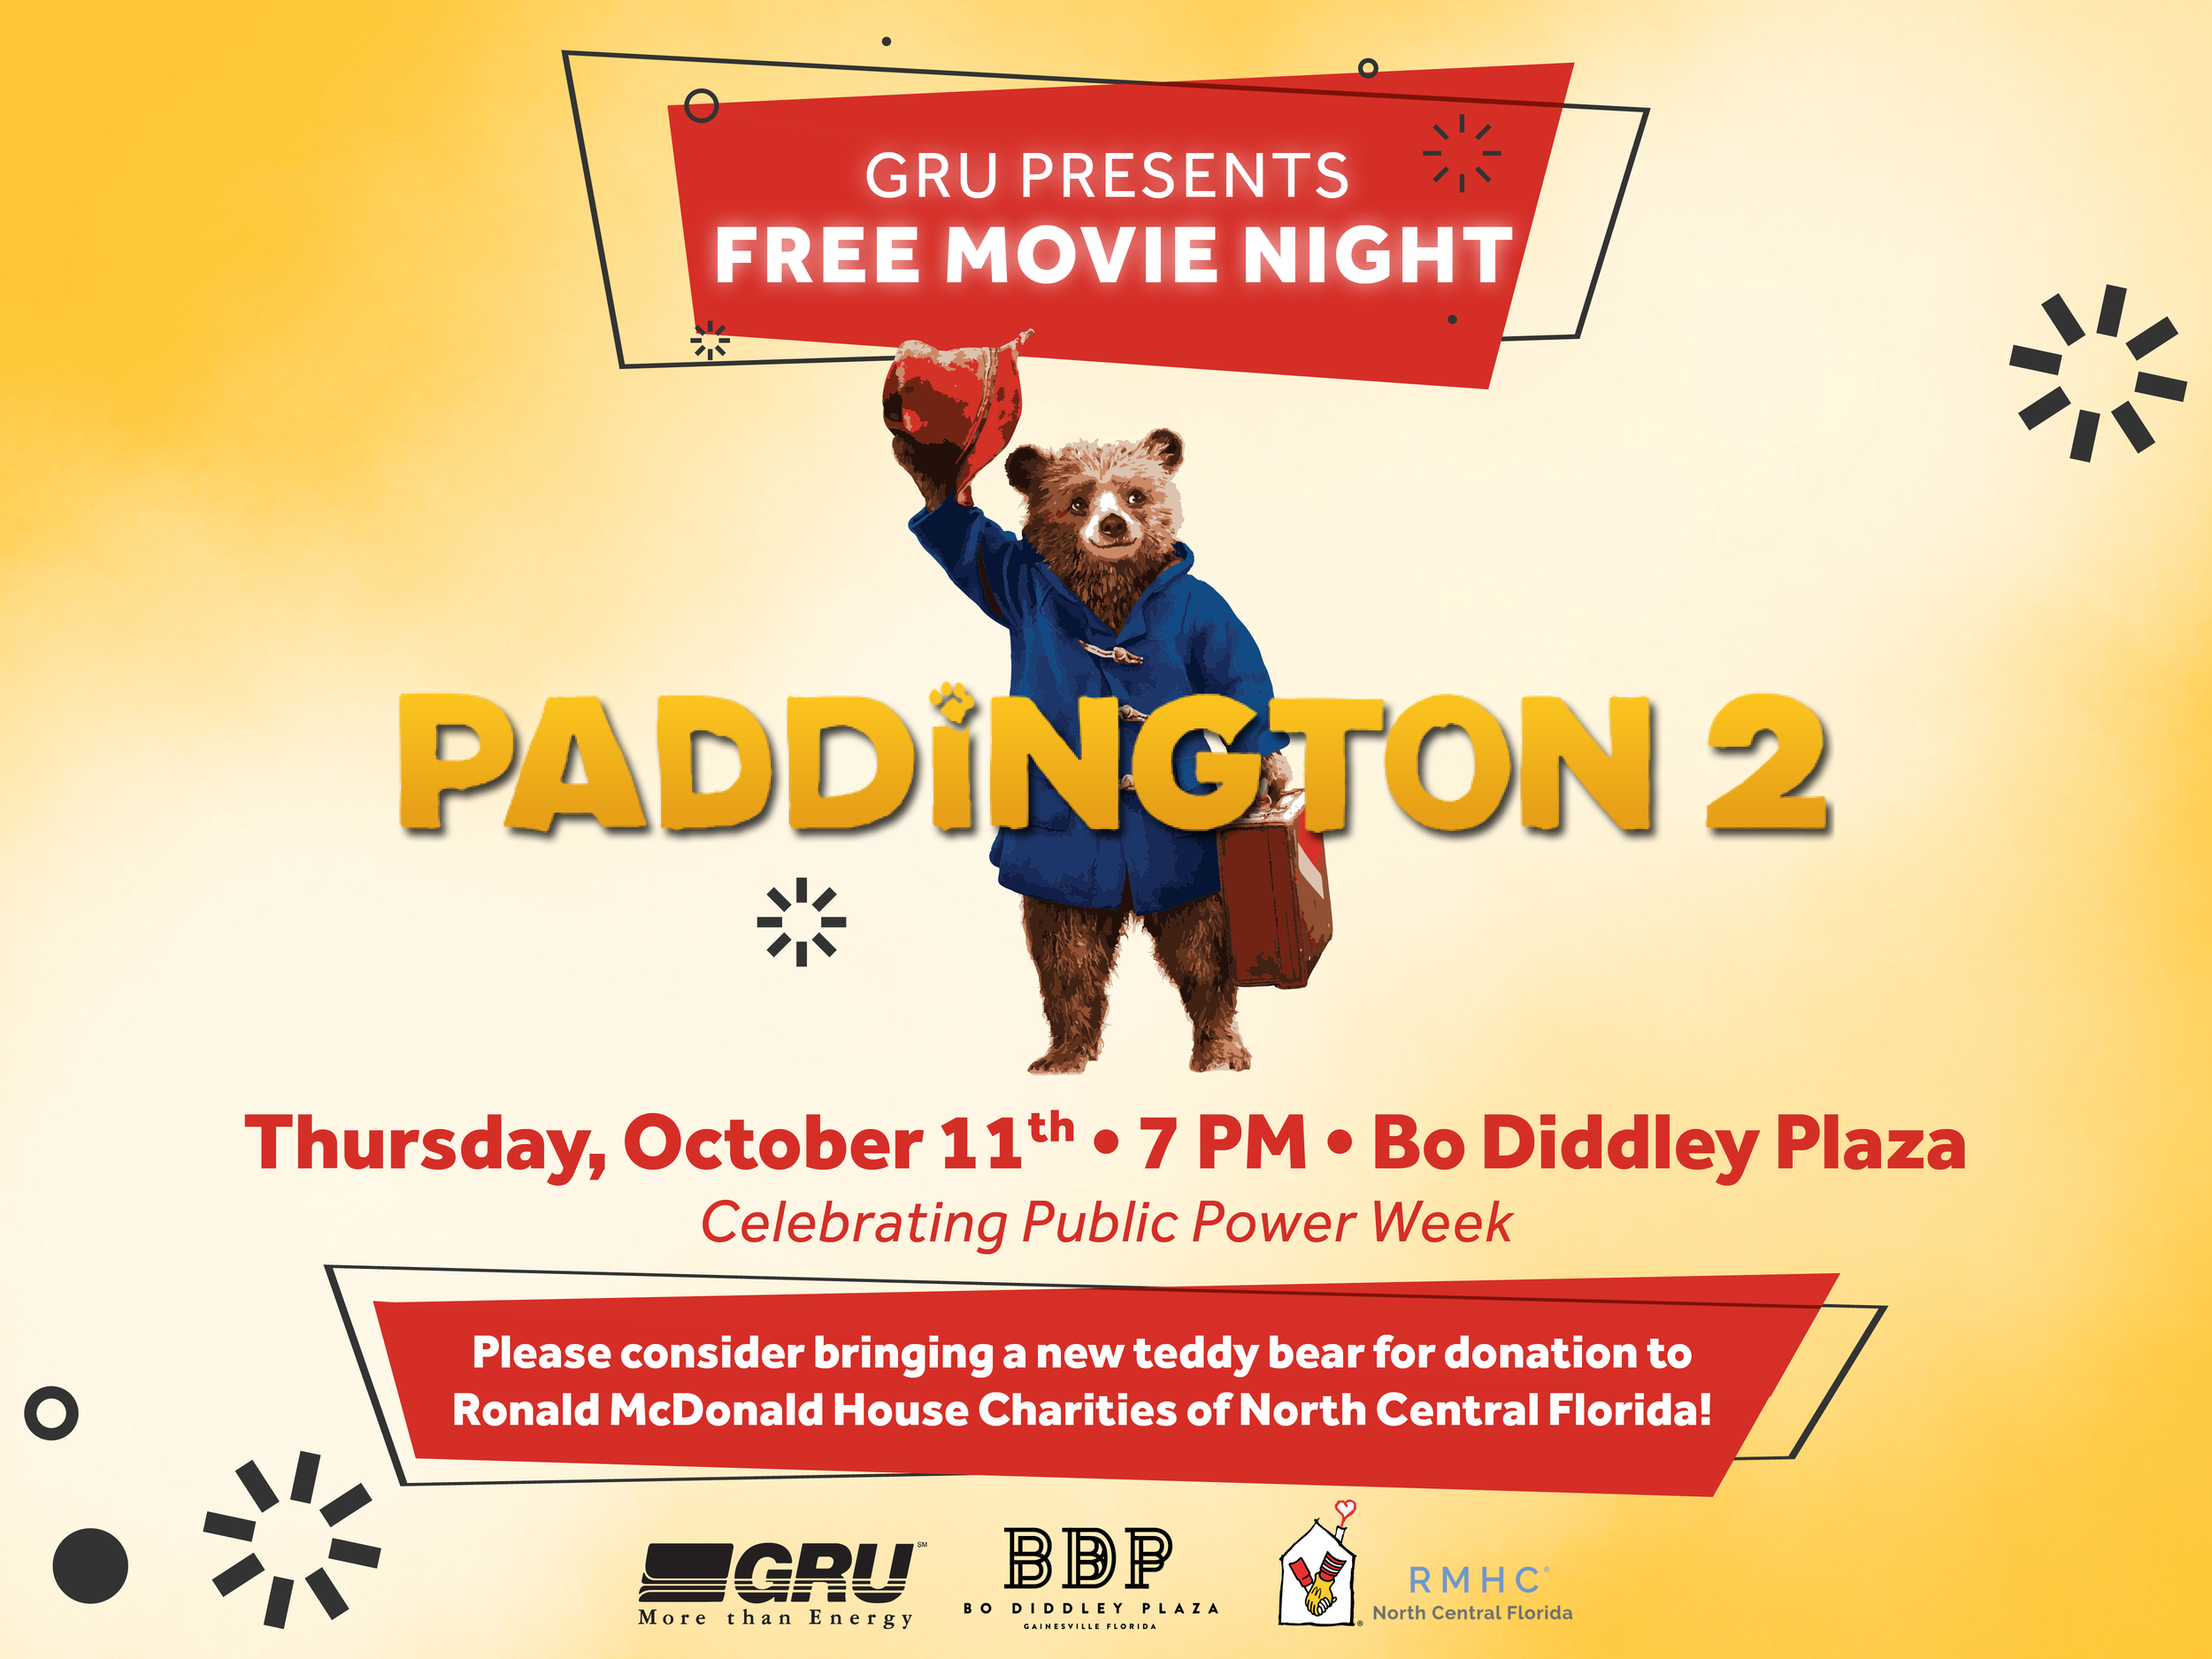 GRU_Paddington2_MovieNight_OCT18_Banner (3).png